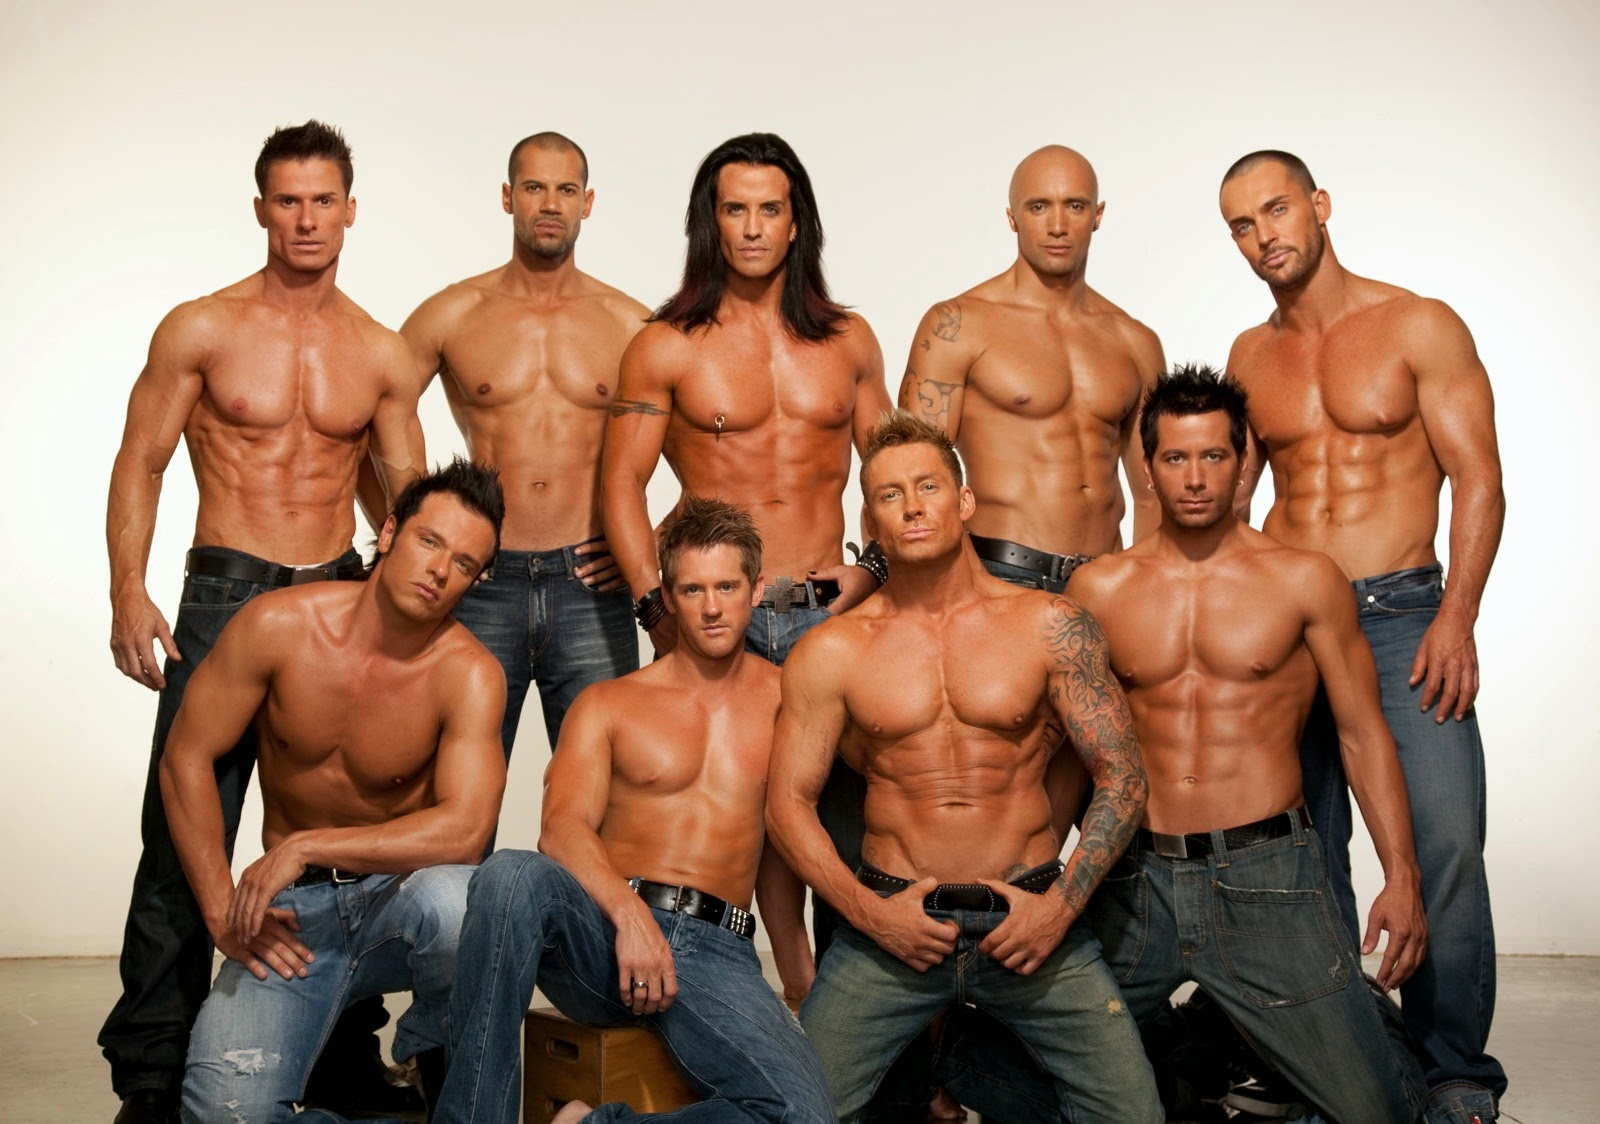 Thunder from Down Under male strippers in Vegas shooting